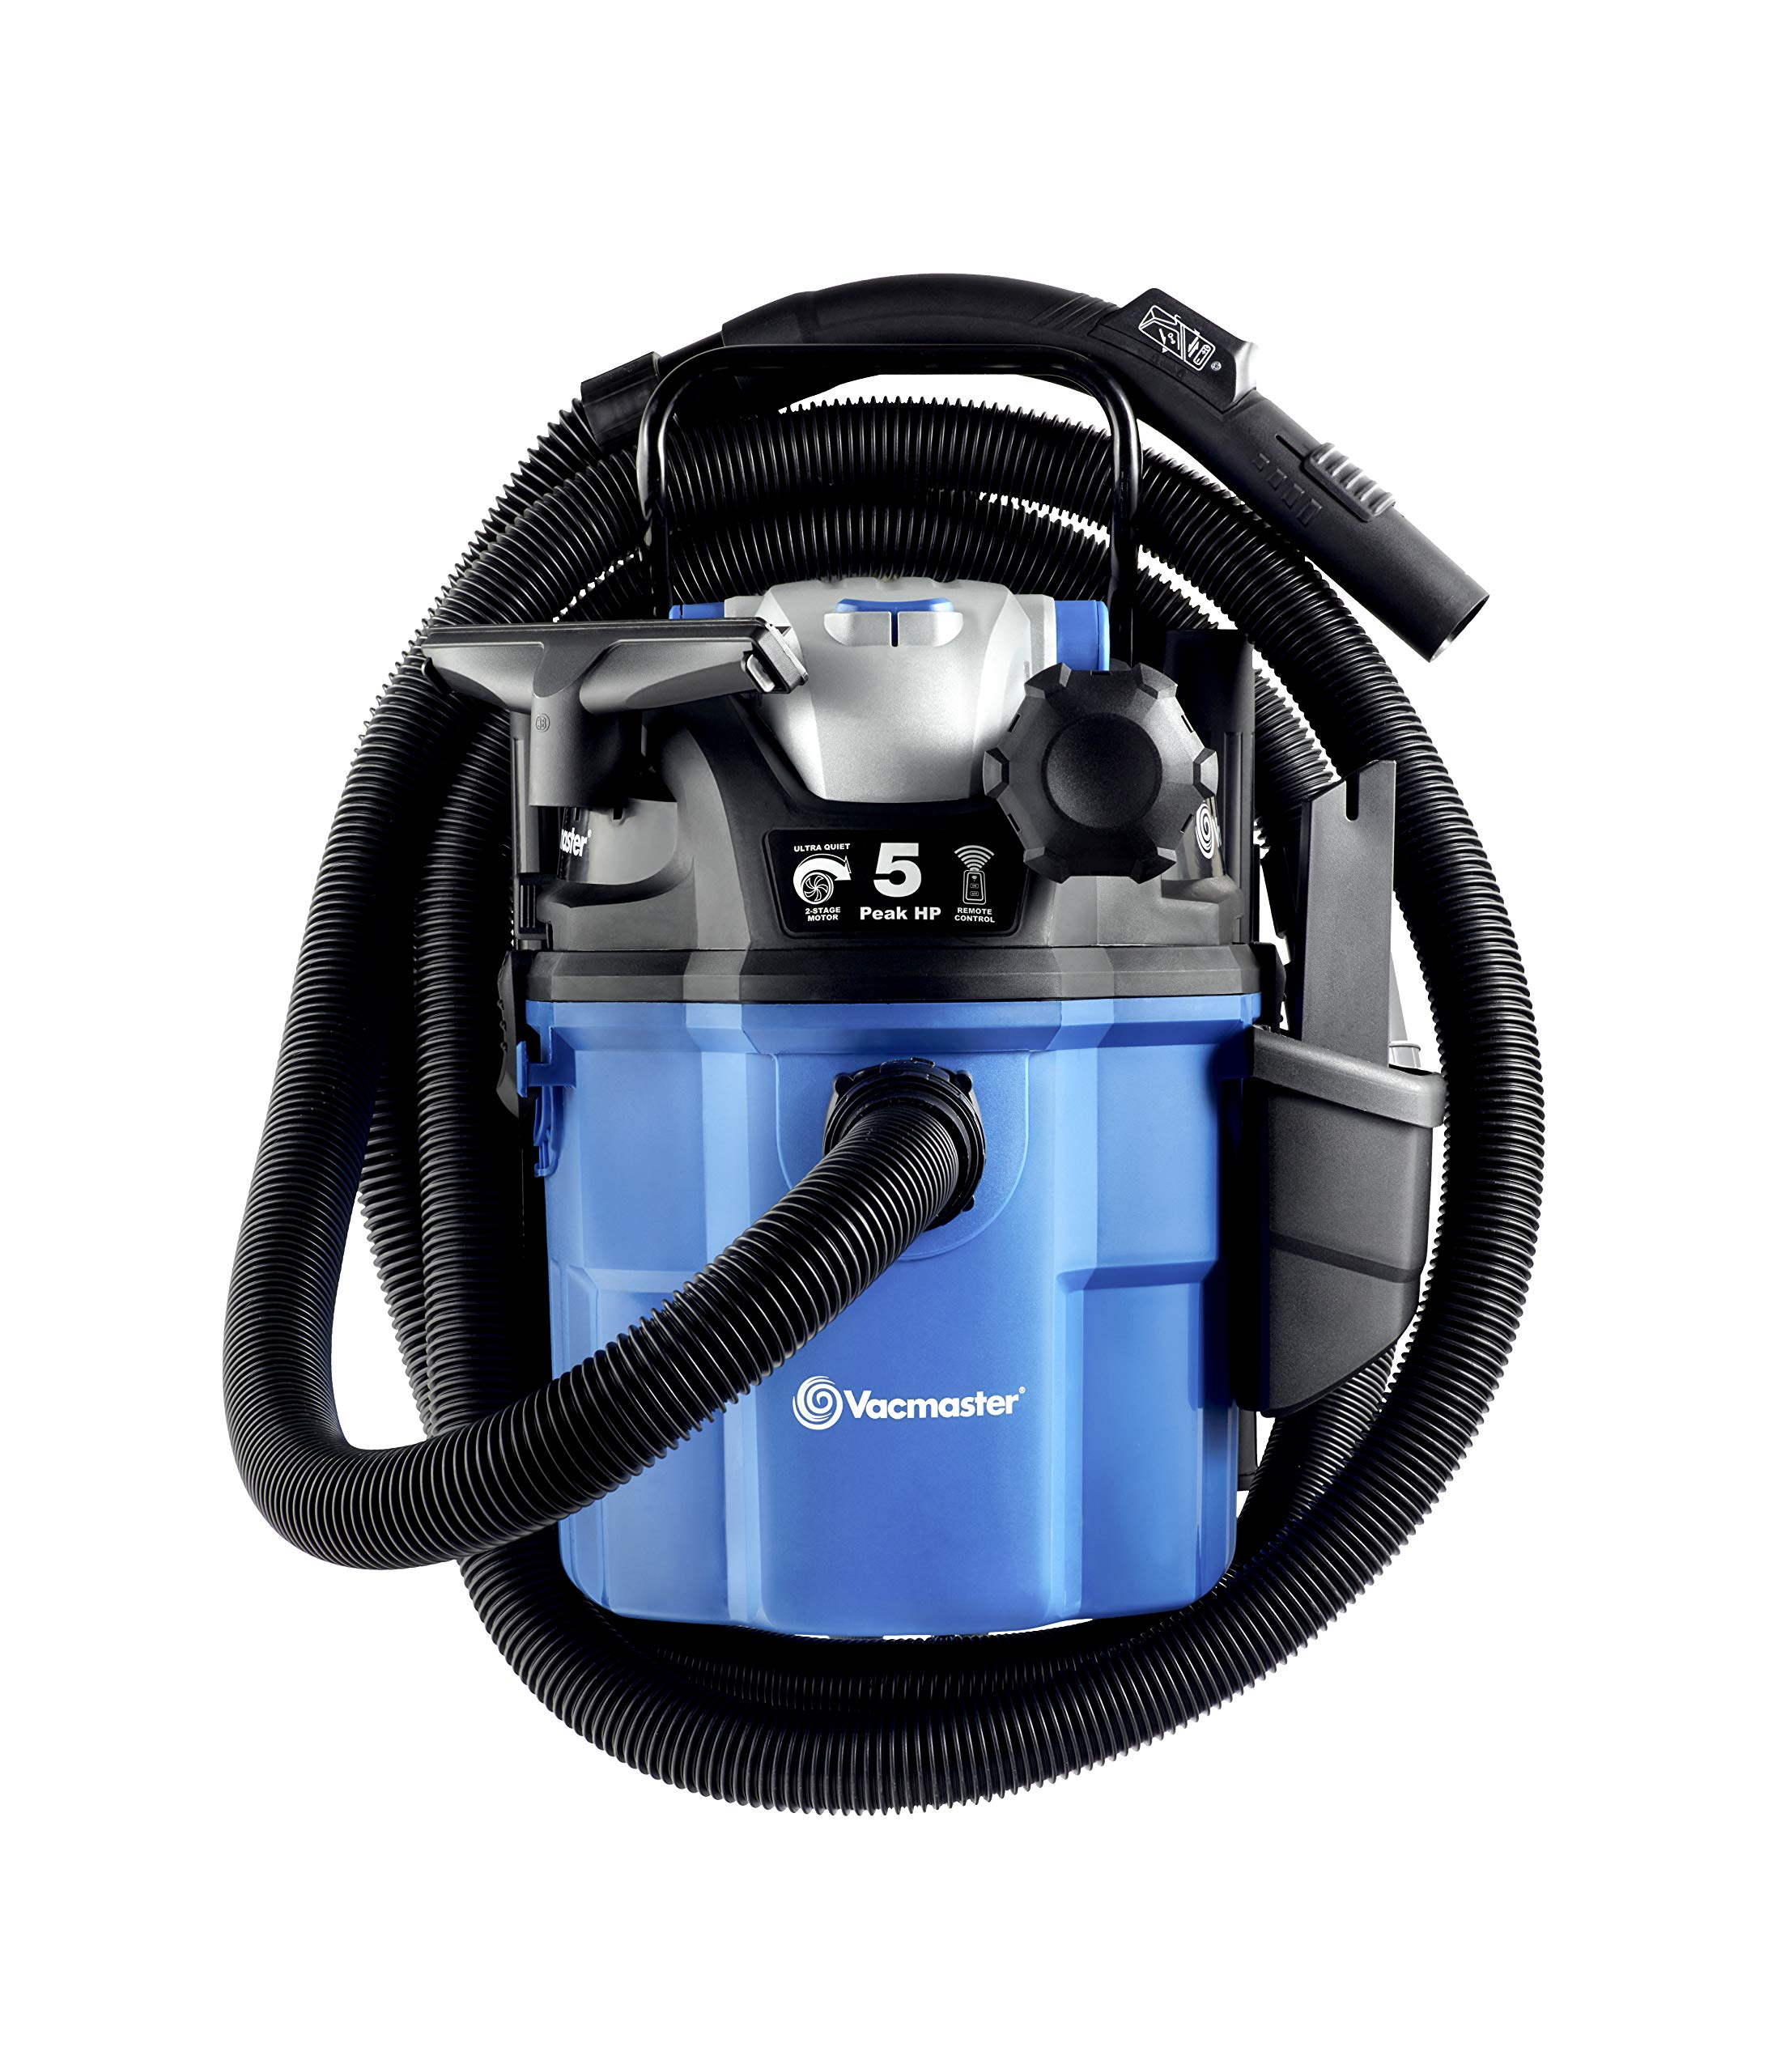 Vacmaster 5 Gallon, 5 Peak HP, with 2-Stage Motor, Wet/Dry Vacuum, Wall Mountable and with Remote Control by VACMASTER